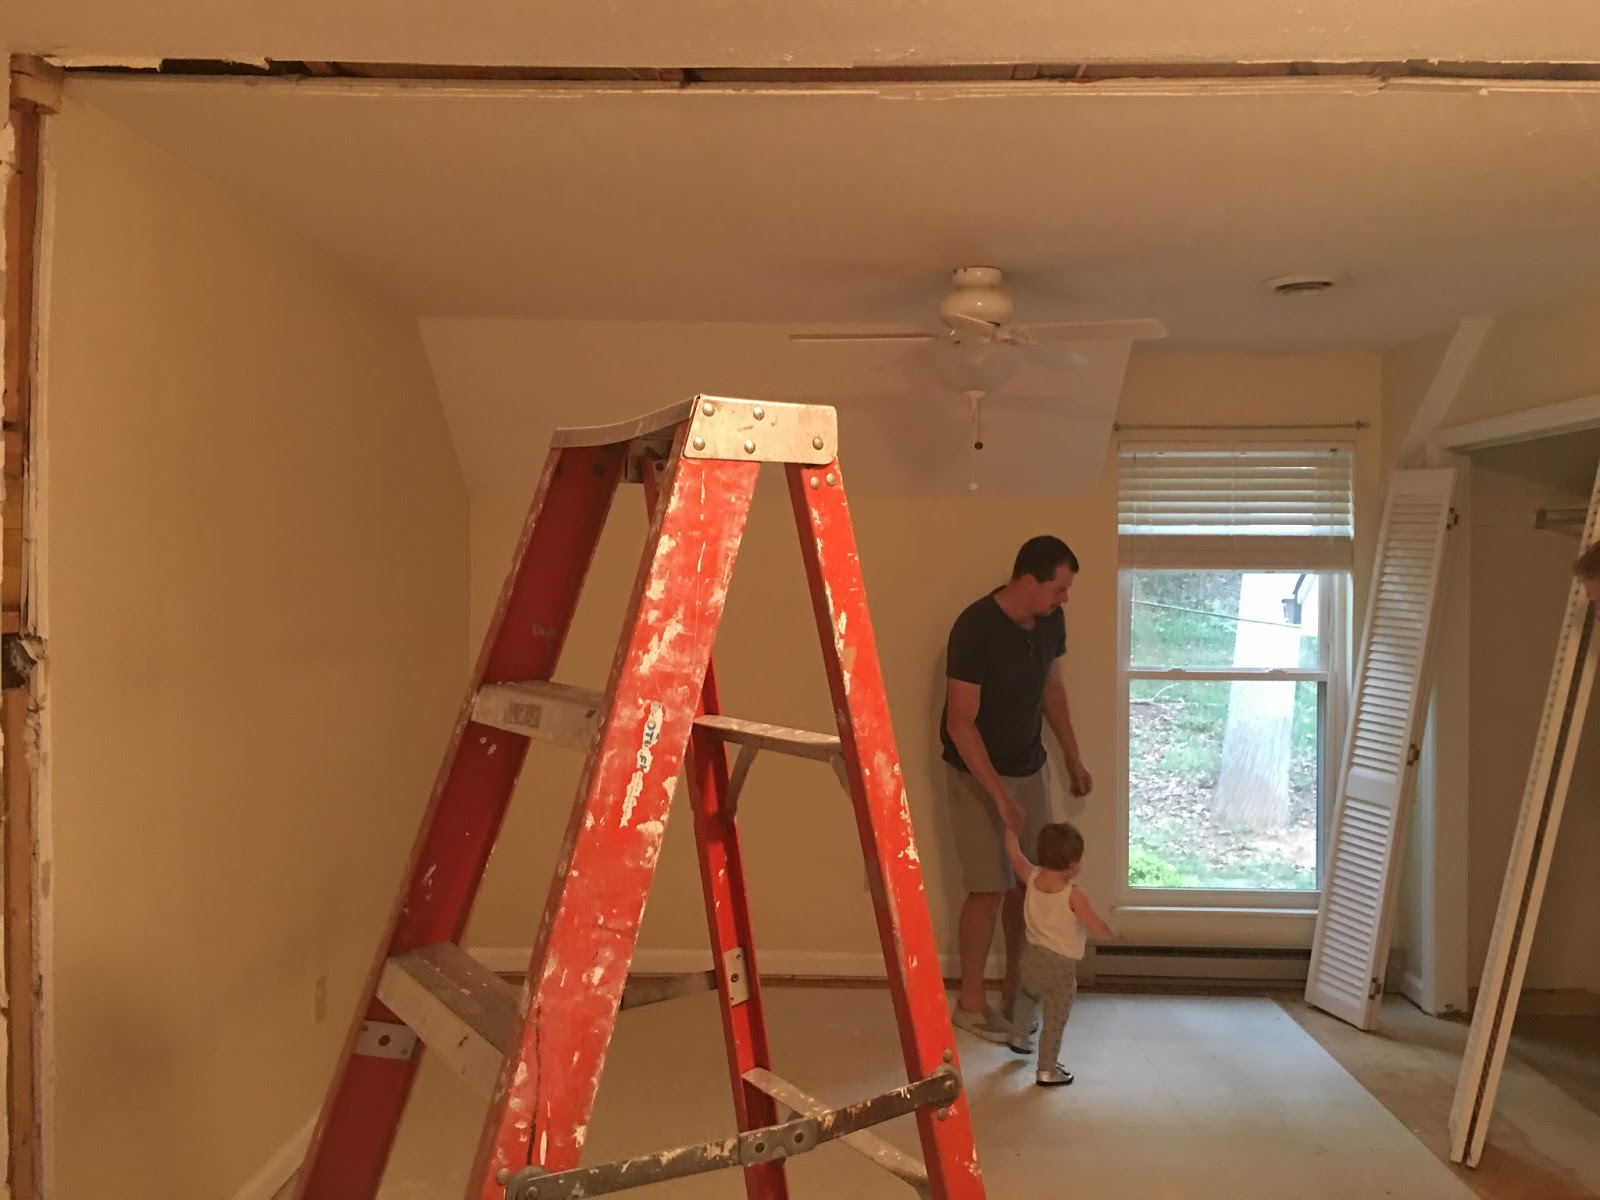 Heres A Pic From When The Hardwood Floors Were Finished No Trim Or Doors Yet And Walls Beige Patchwork Disaster But It Was Getting There